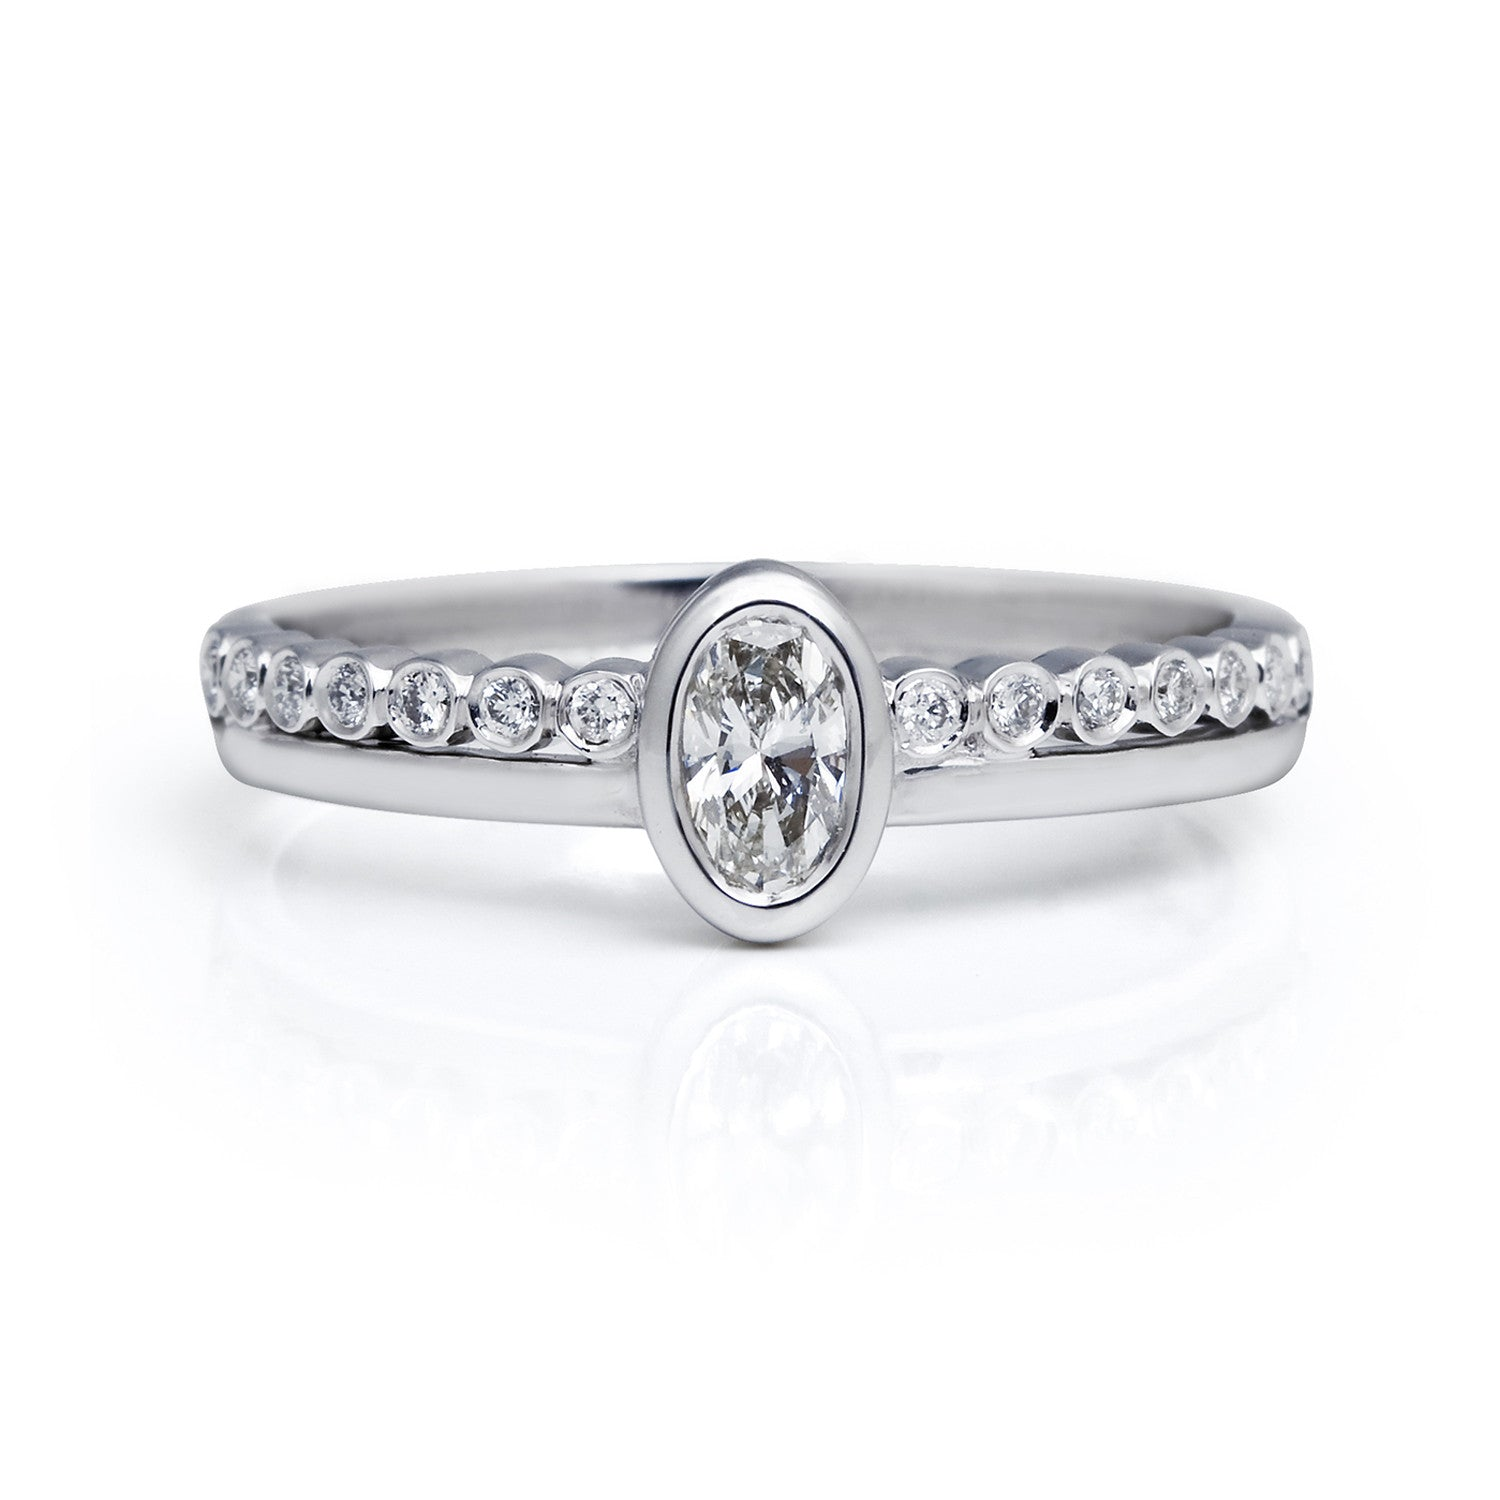 Bespoke Jewellery- Oval engagement ring in 18ct white gold 1- Arabel Lebrusan